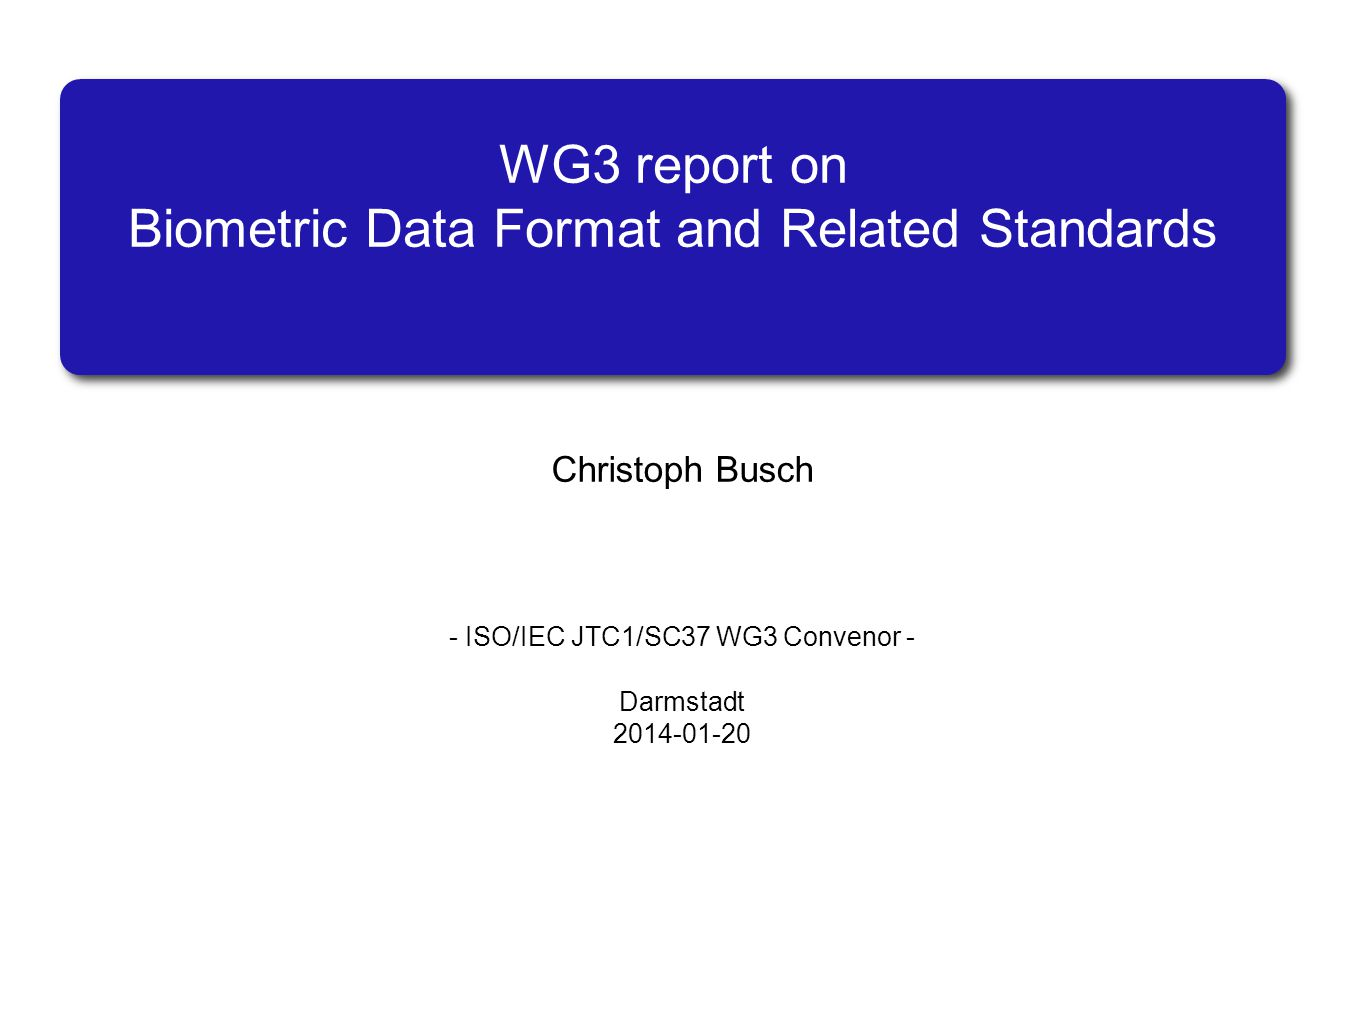 WG3 report on Biometric Data Format and Related Standards